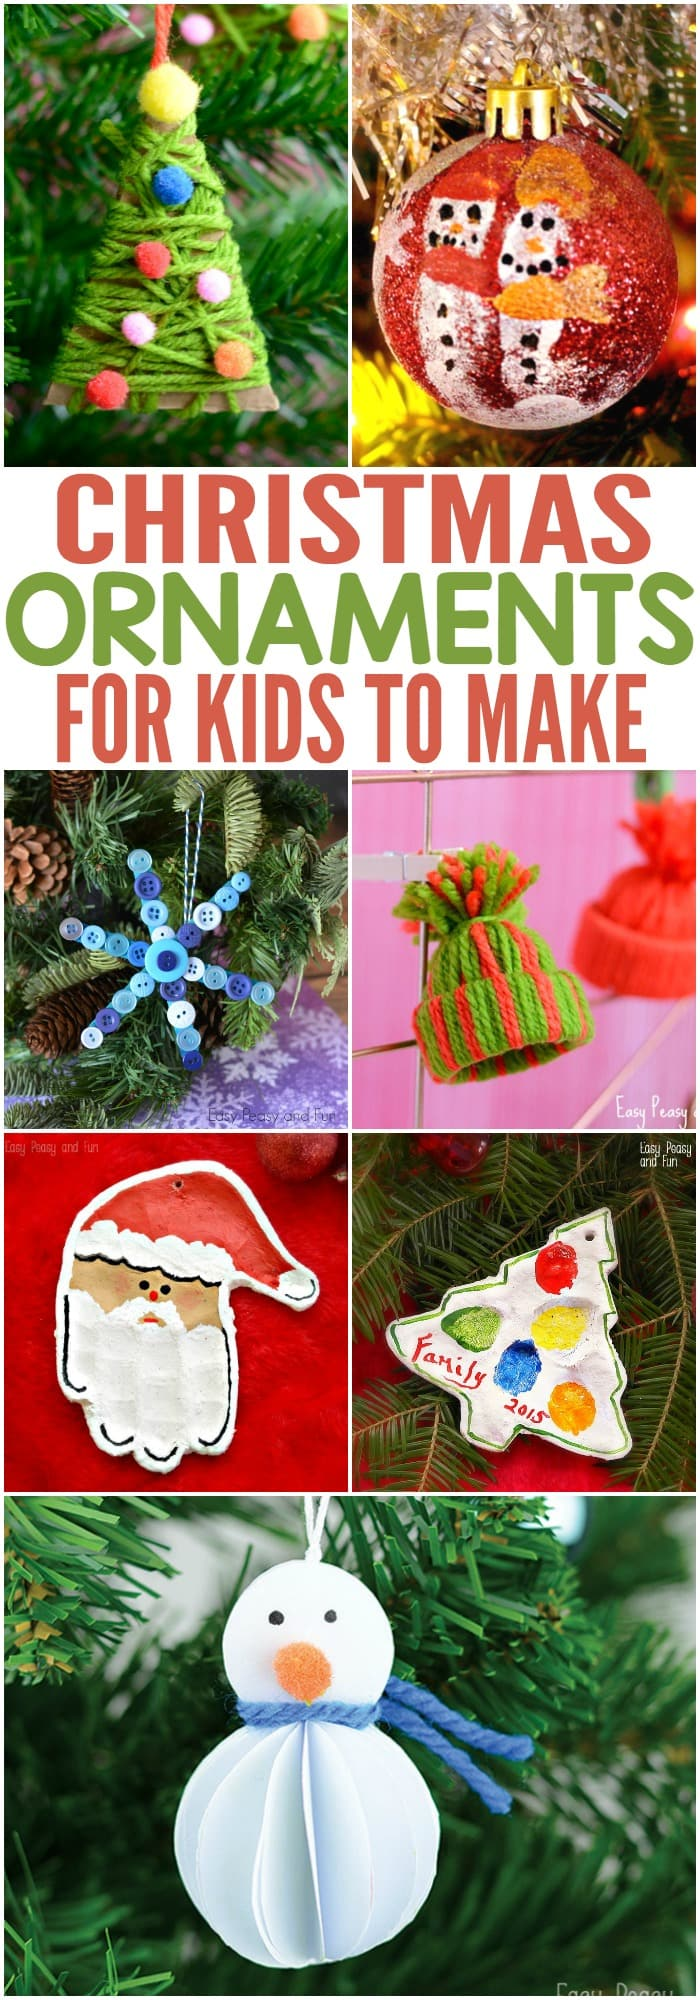 Diy Christmas Ornaments Jolly Diy Christmas Ornaments Ideas Homemade Memories For Kids